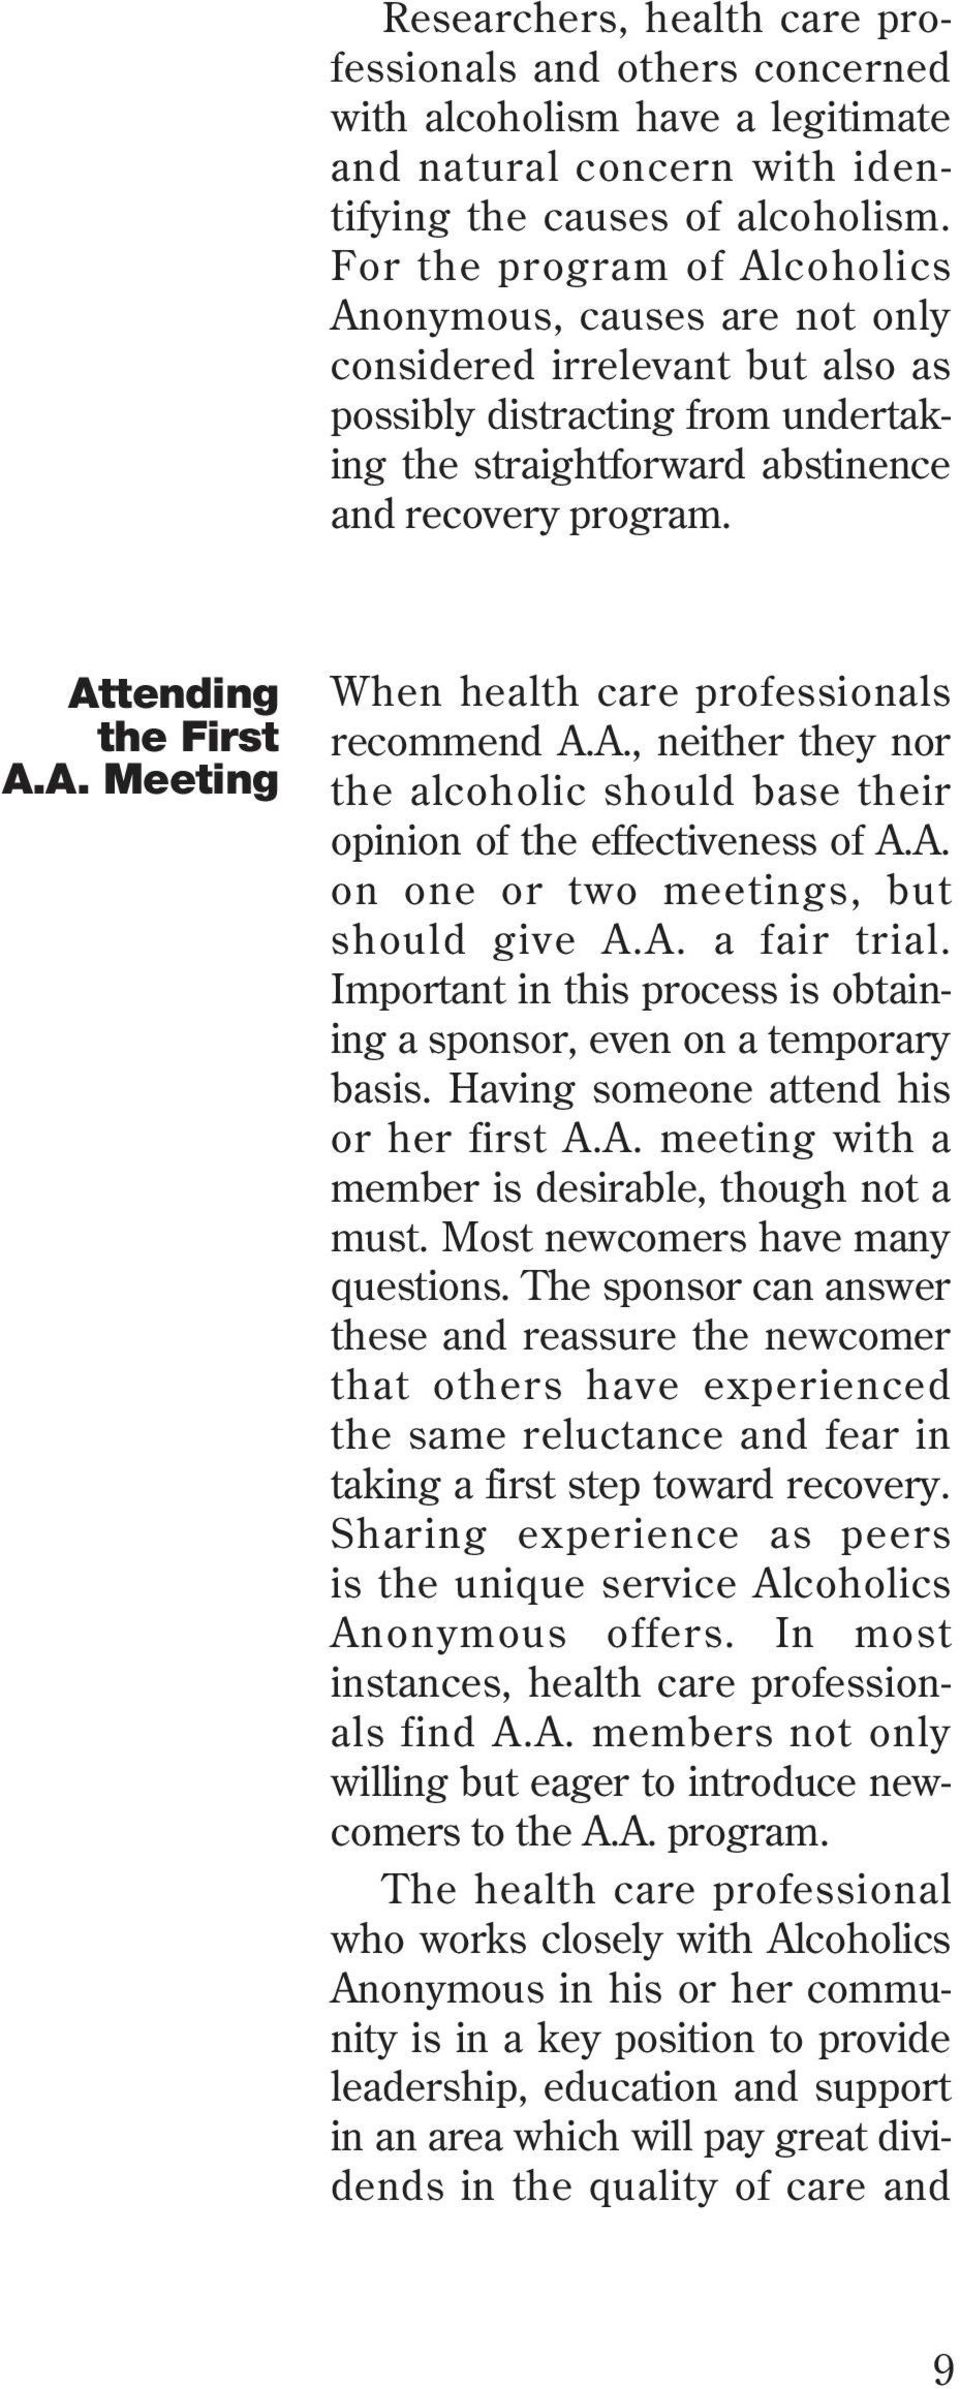 Attending the First A.A. Meeting When health care professionals recommend A.A., neither they nor the alcoholic should base their opinion of the effectiveness of A.A. on one or two meetings, but should give A.